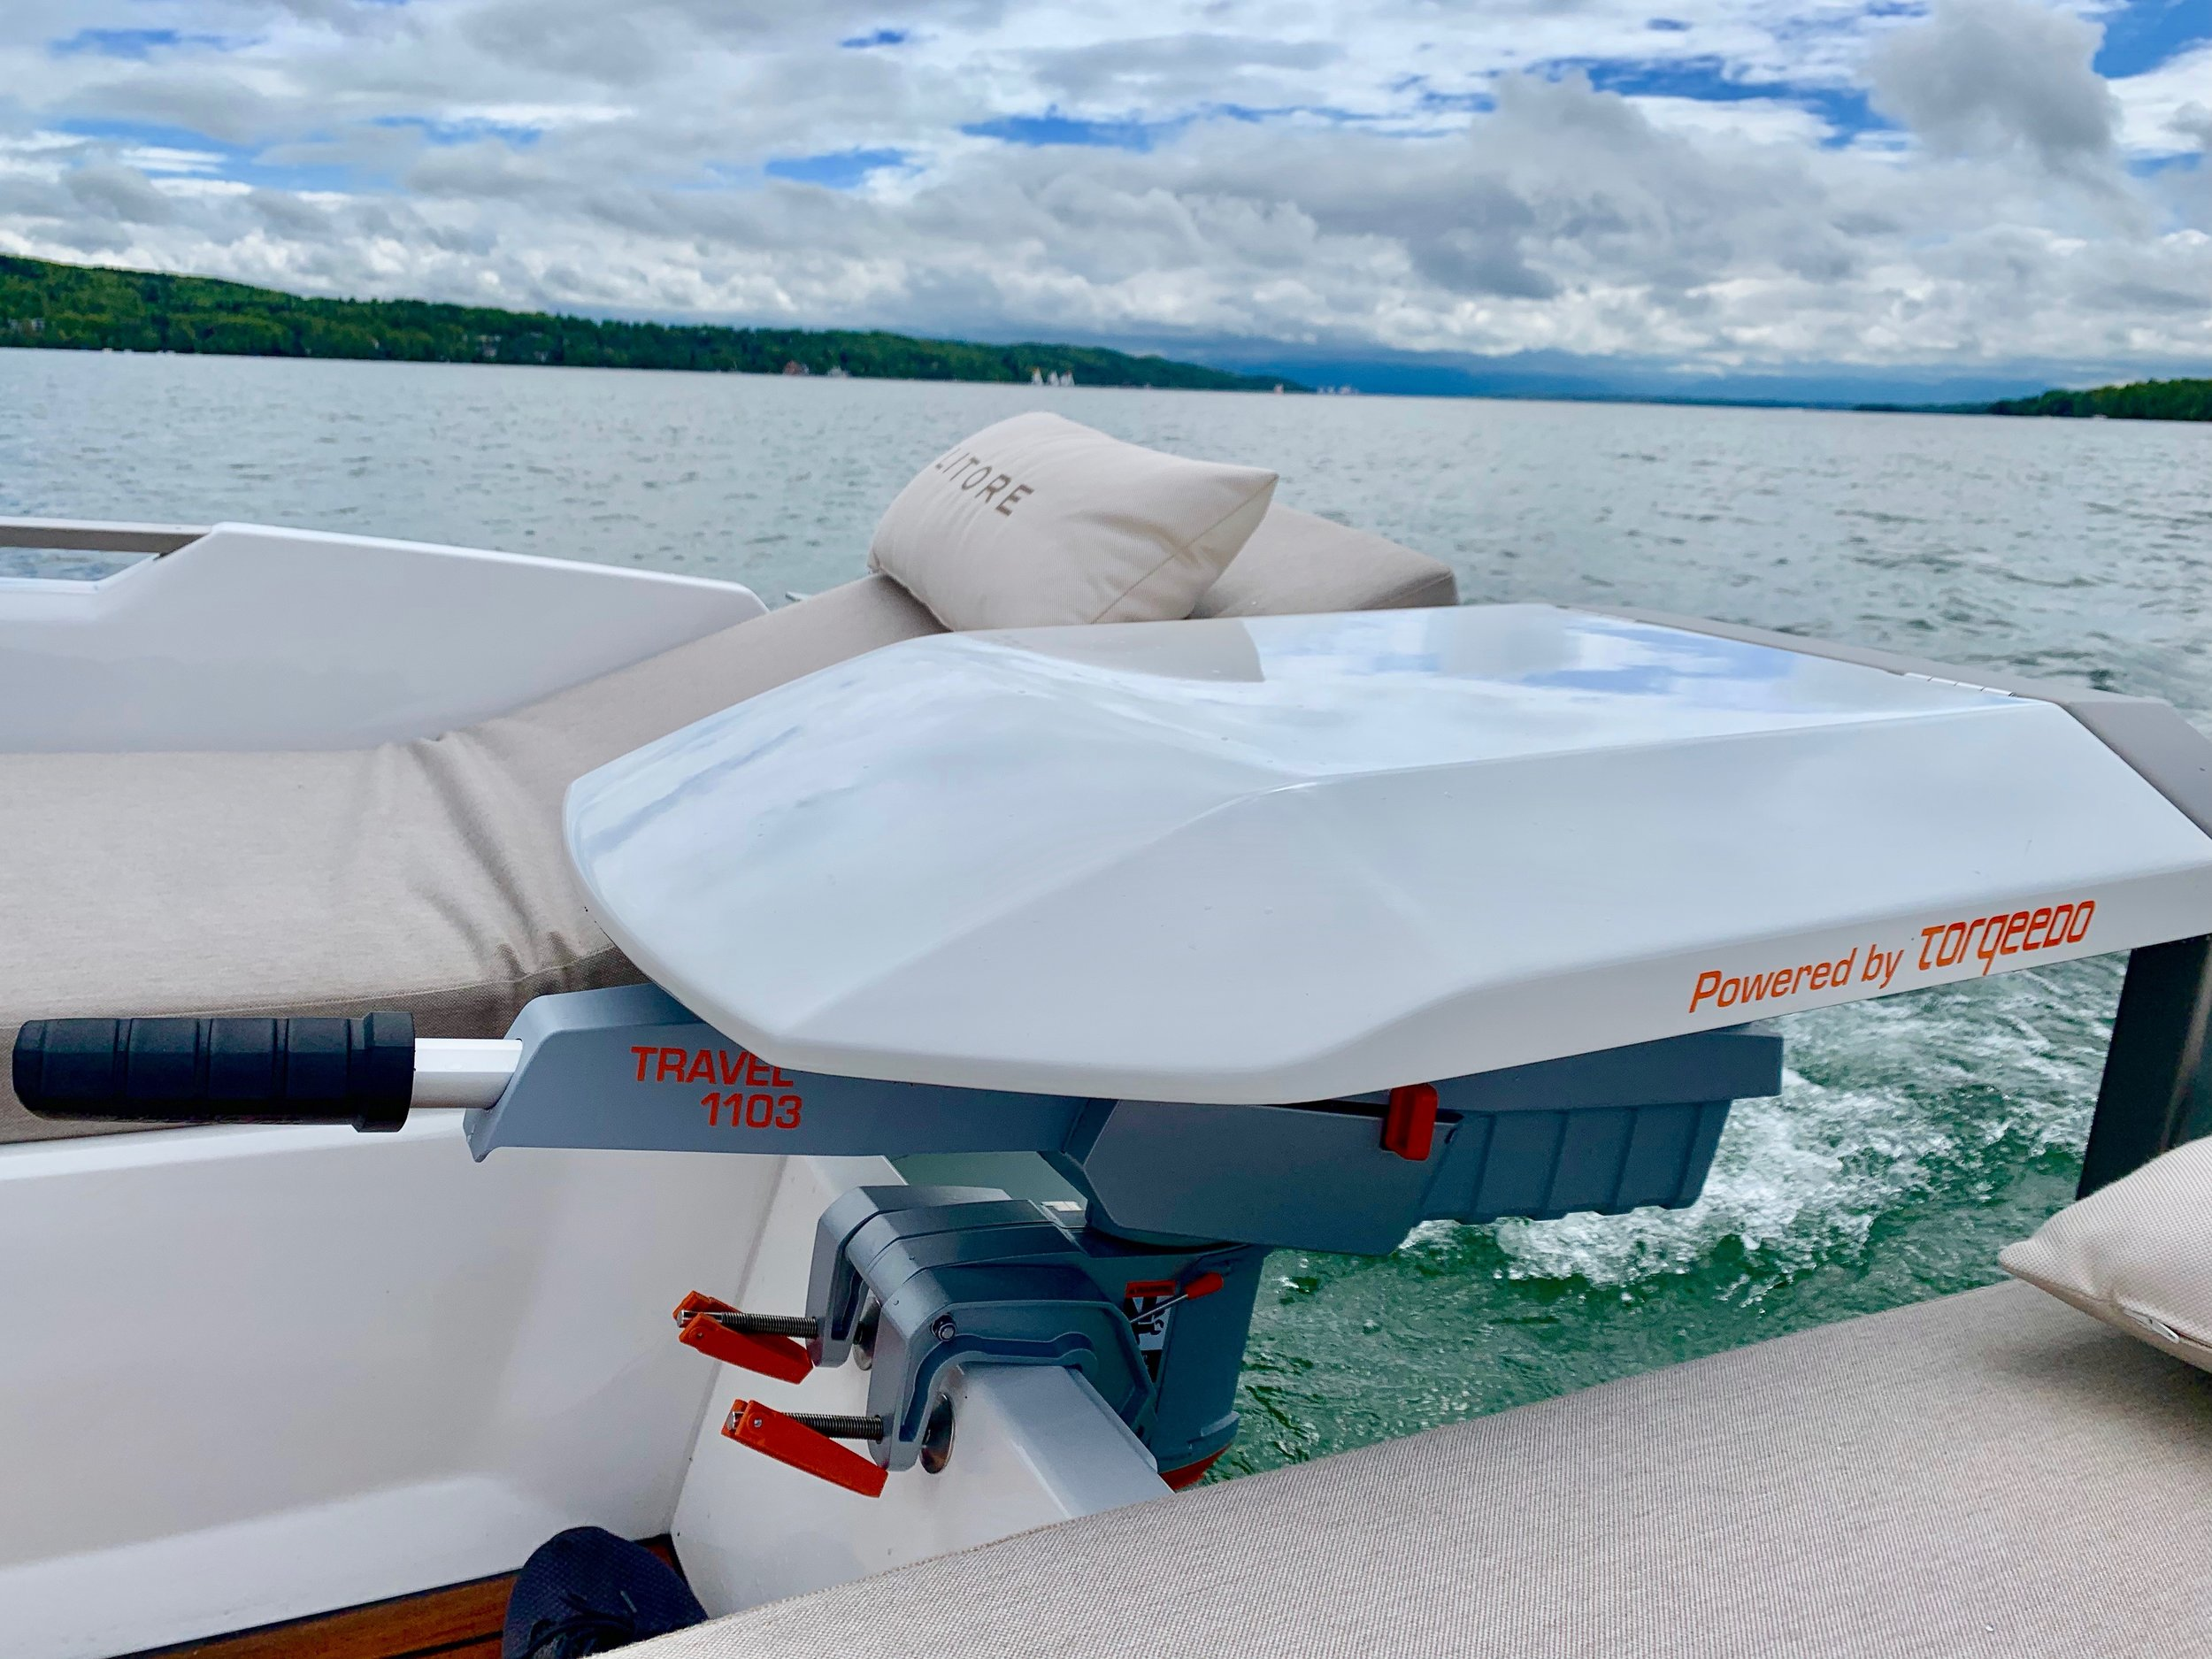 Designed for easy boating - Litore One introduce a new way of handling outboard motor through the foldable engine cover which is simultaneously an armrest.